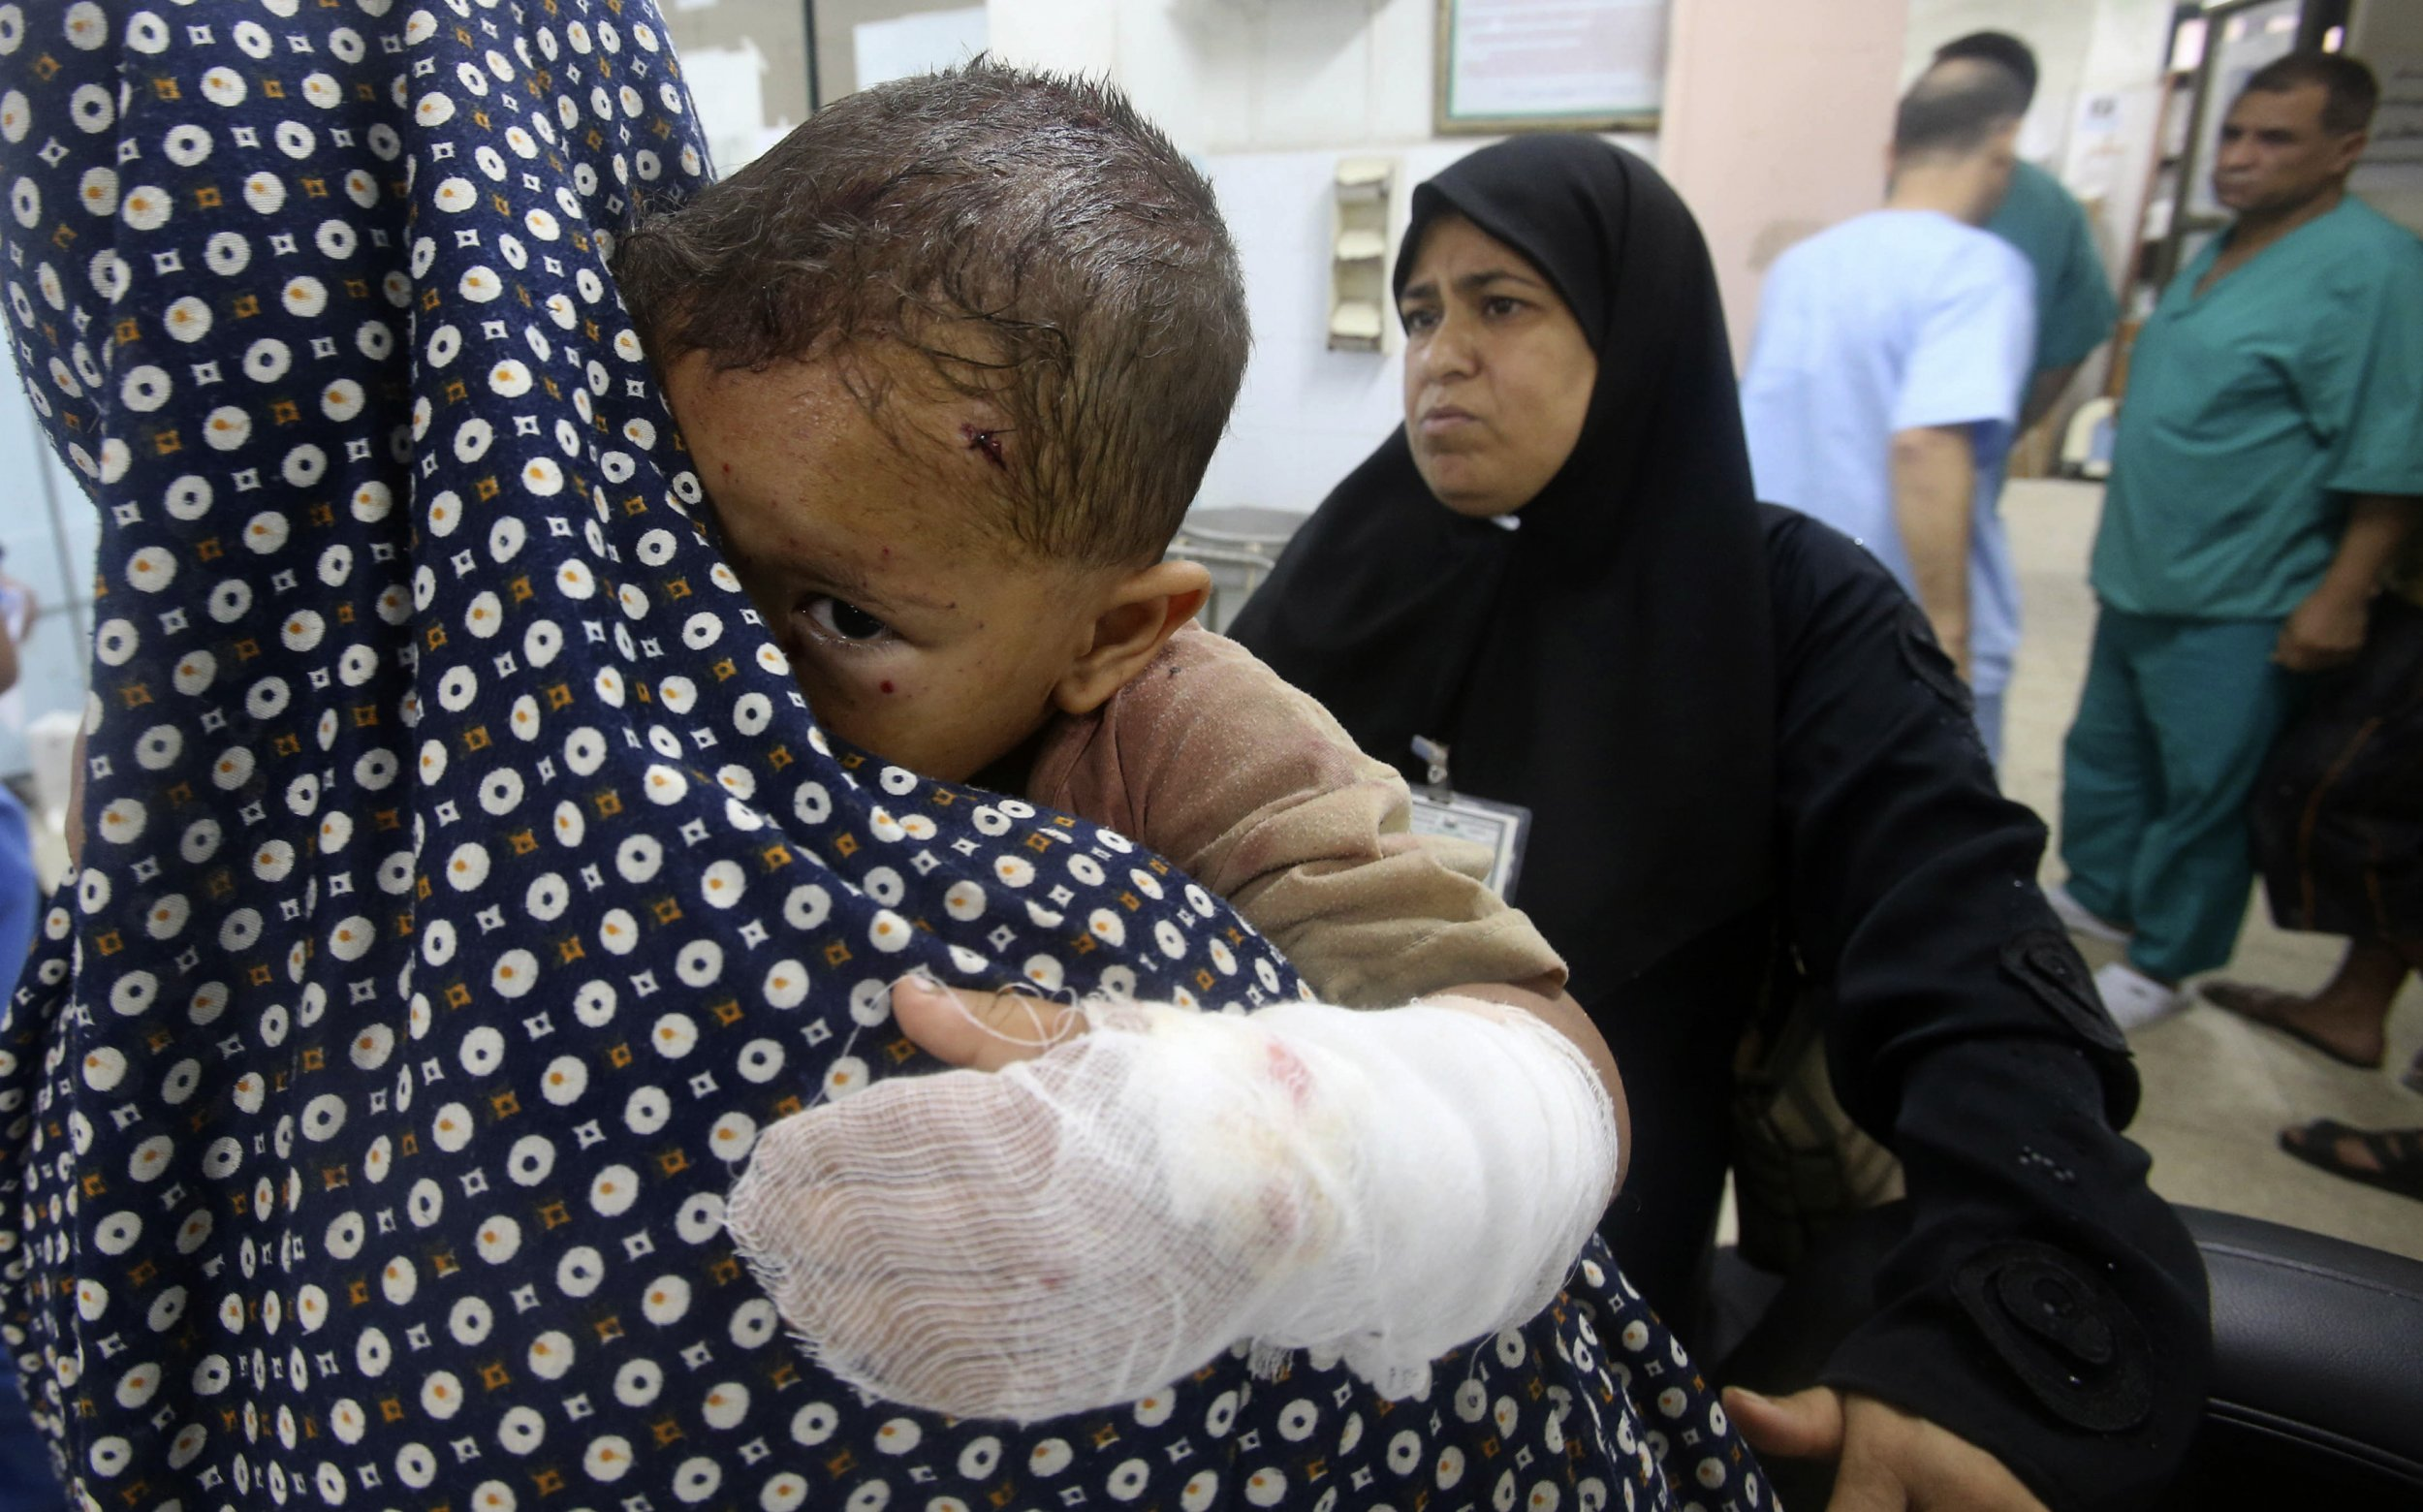 Gaza wounded boy